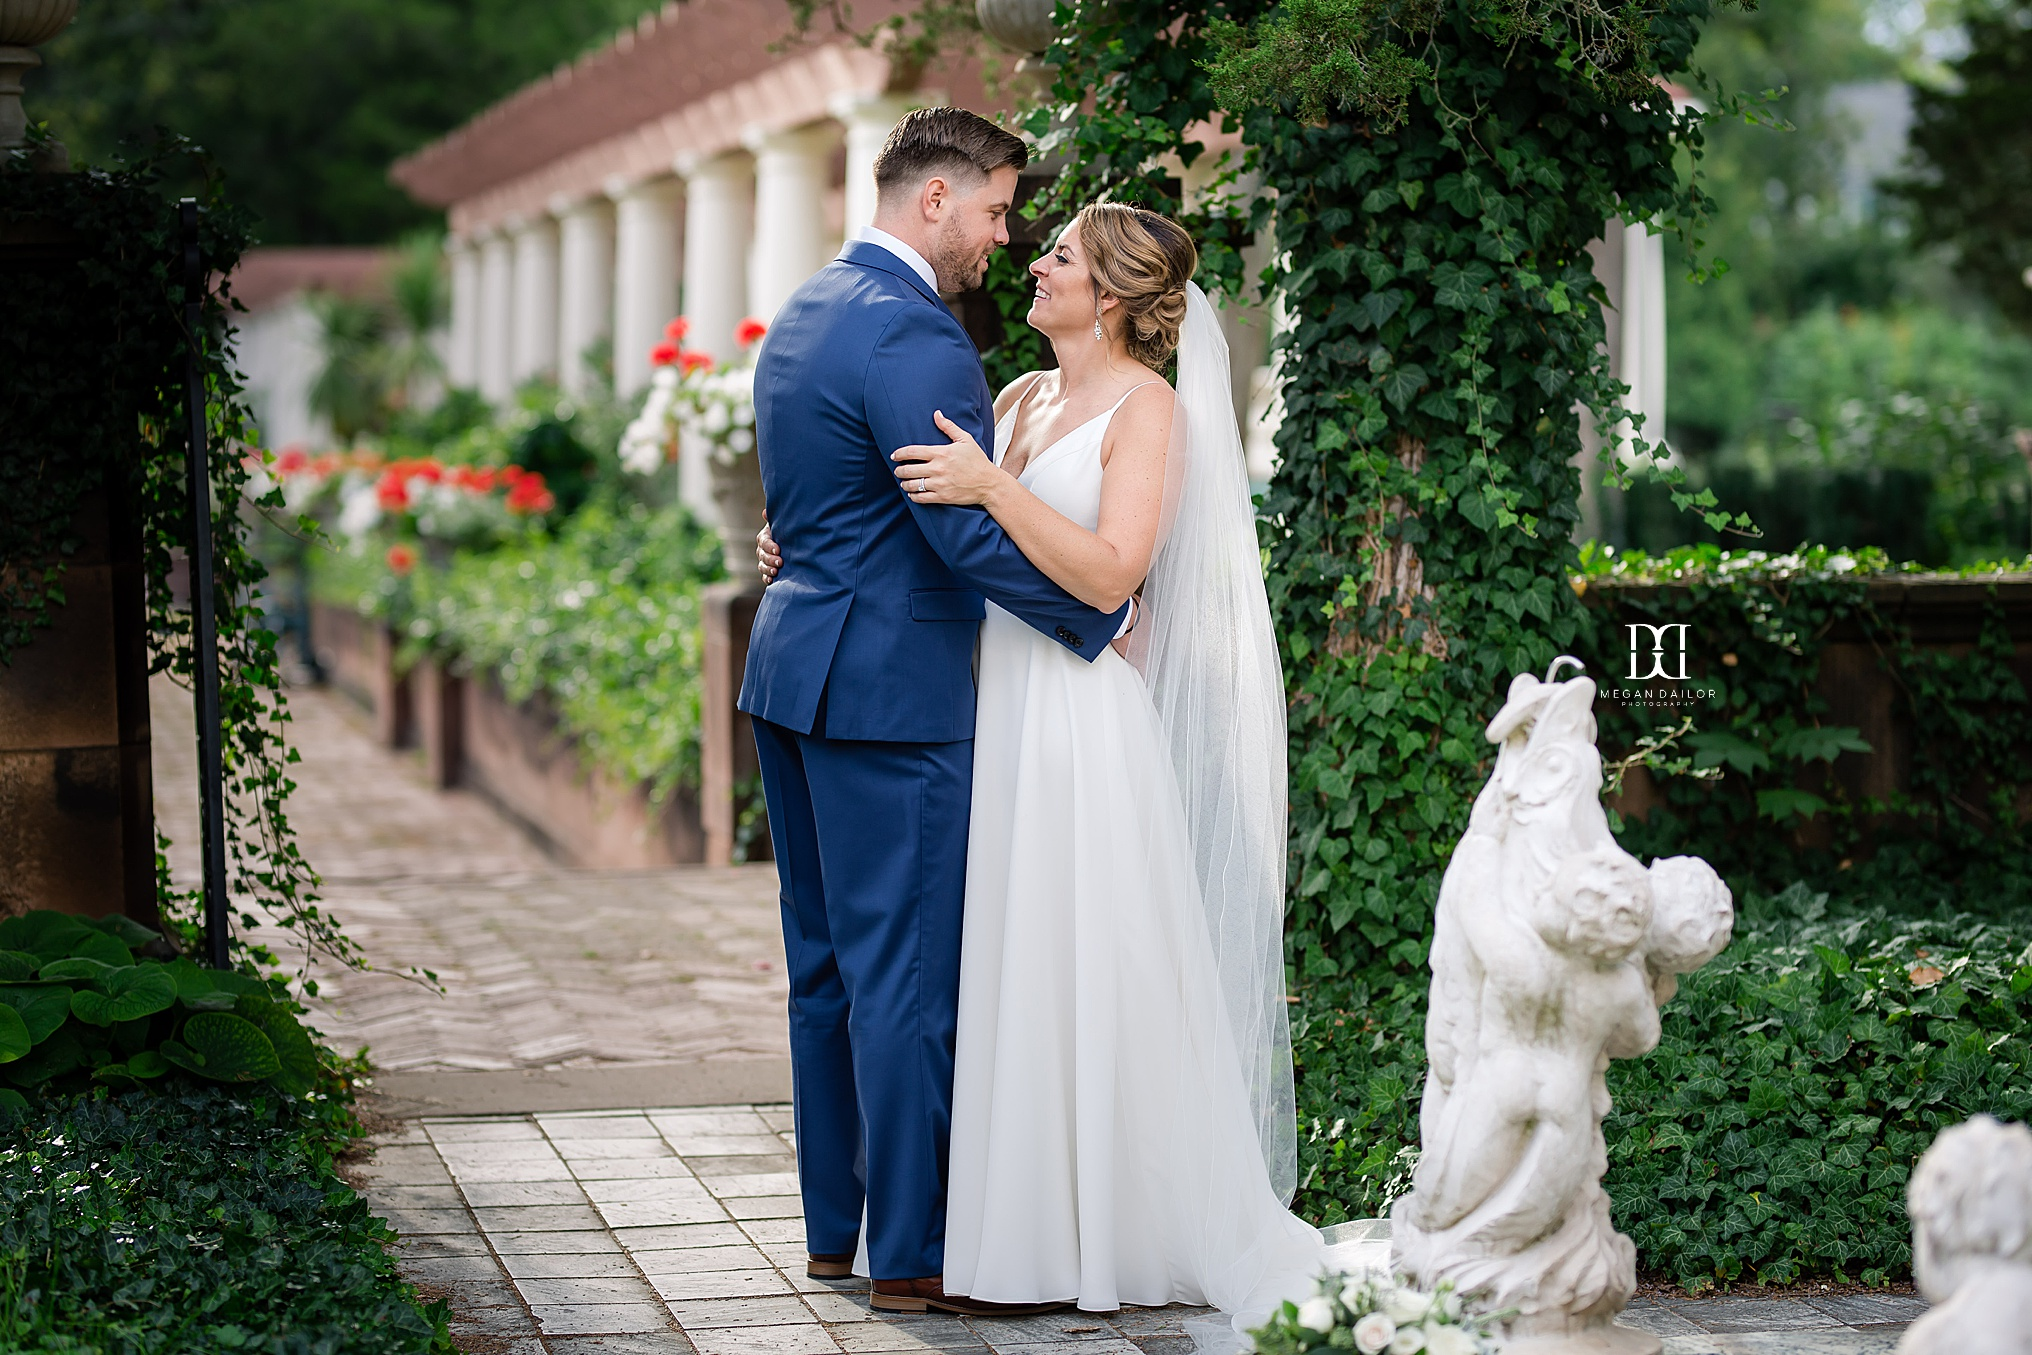 Sonnenberg Gardens Wedding Photos